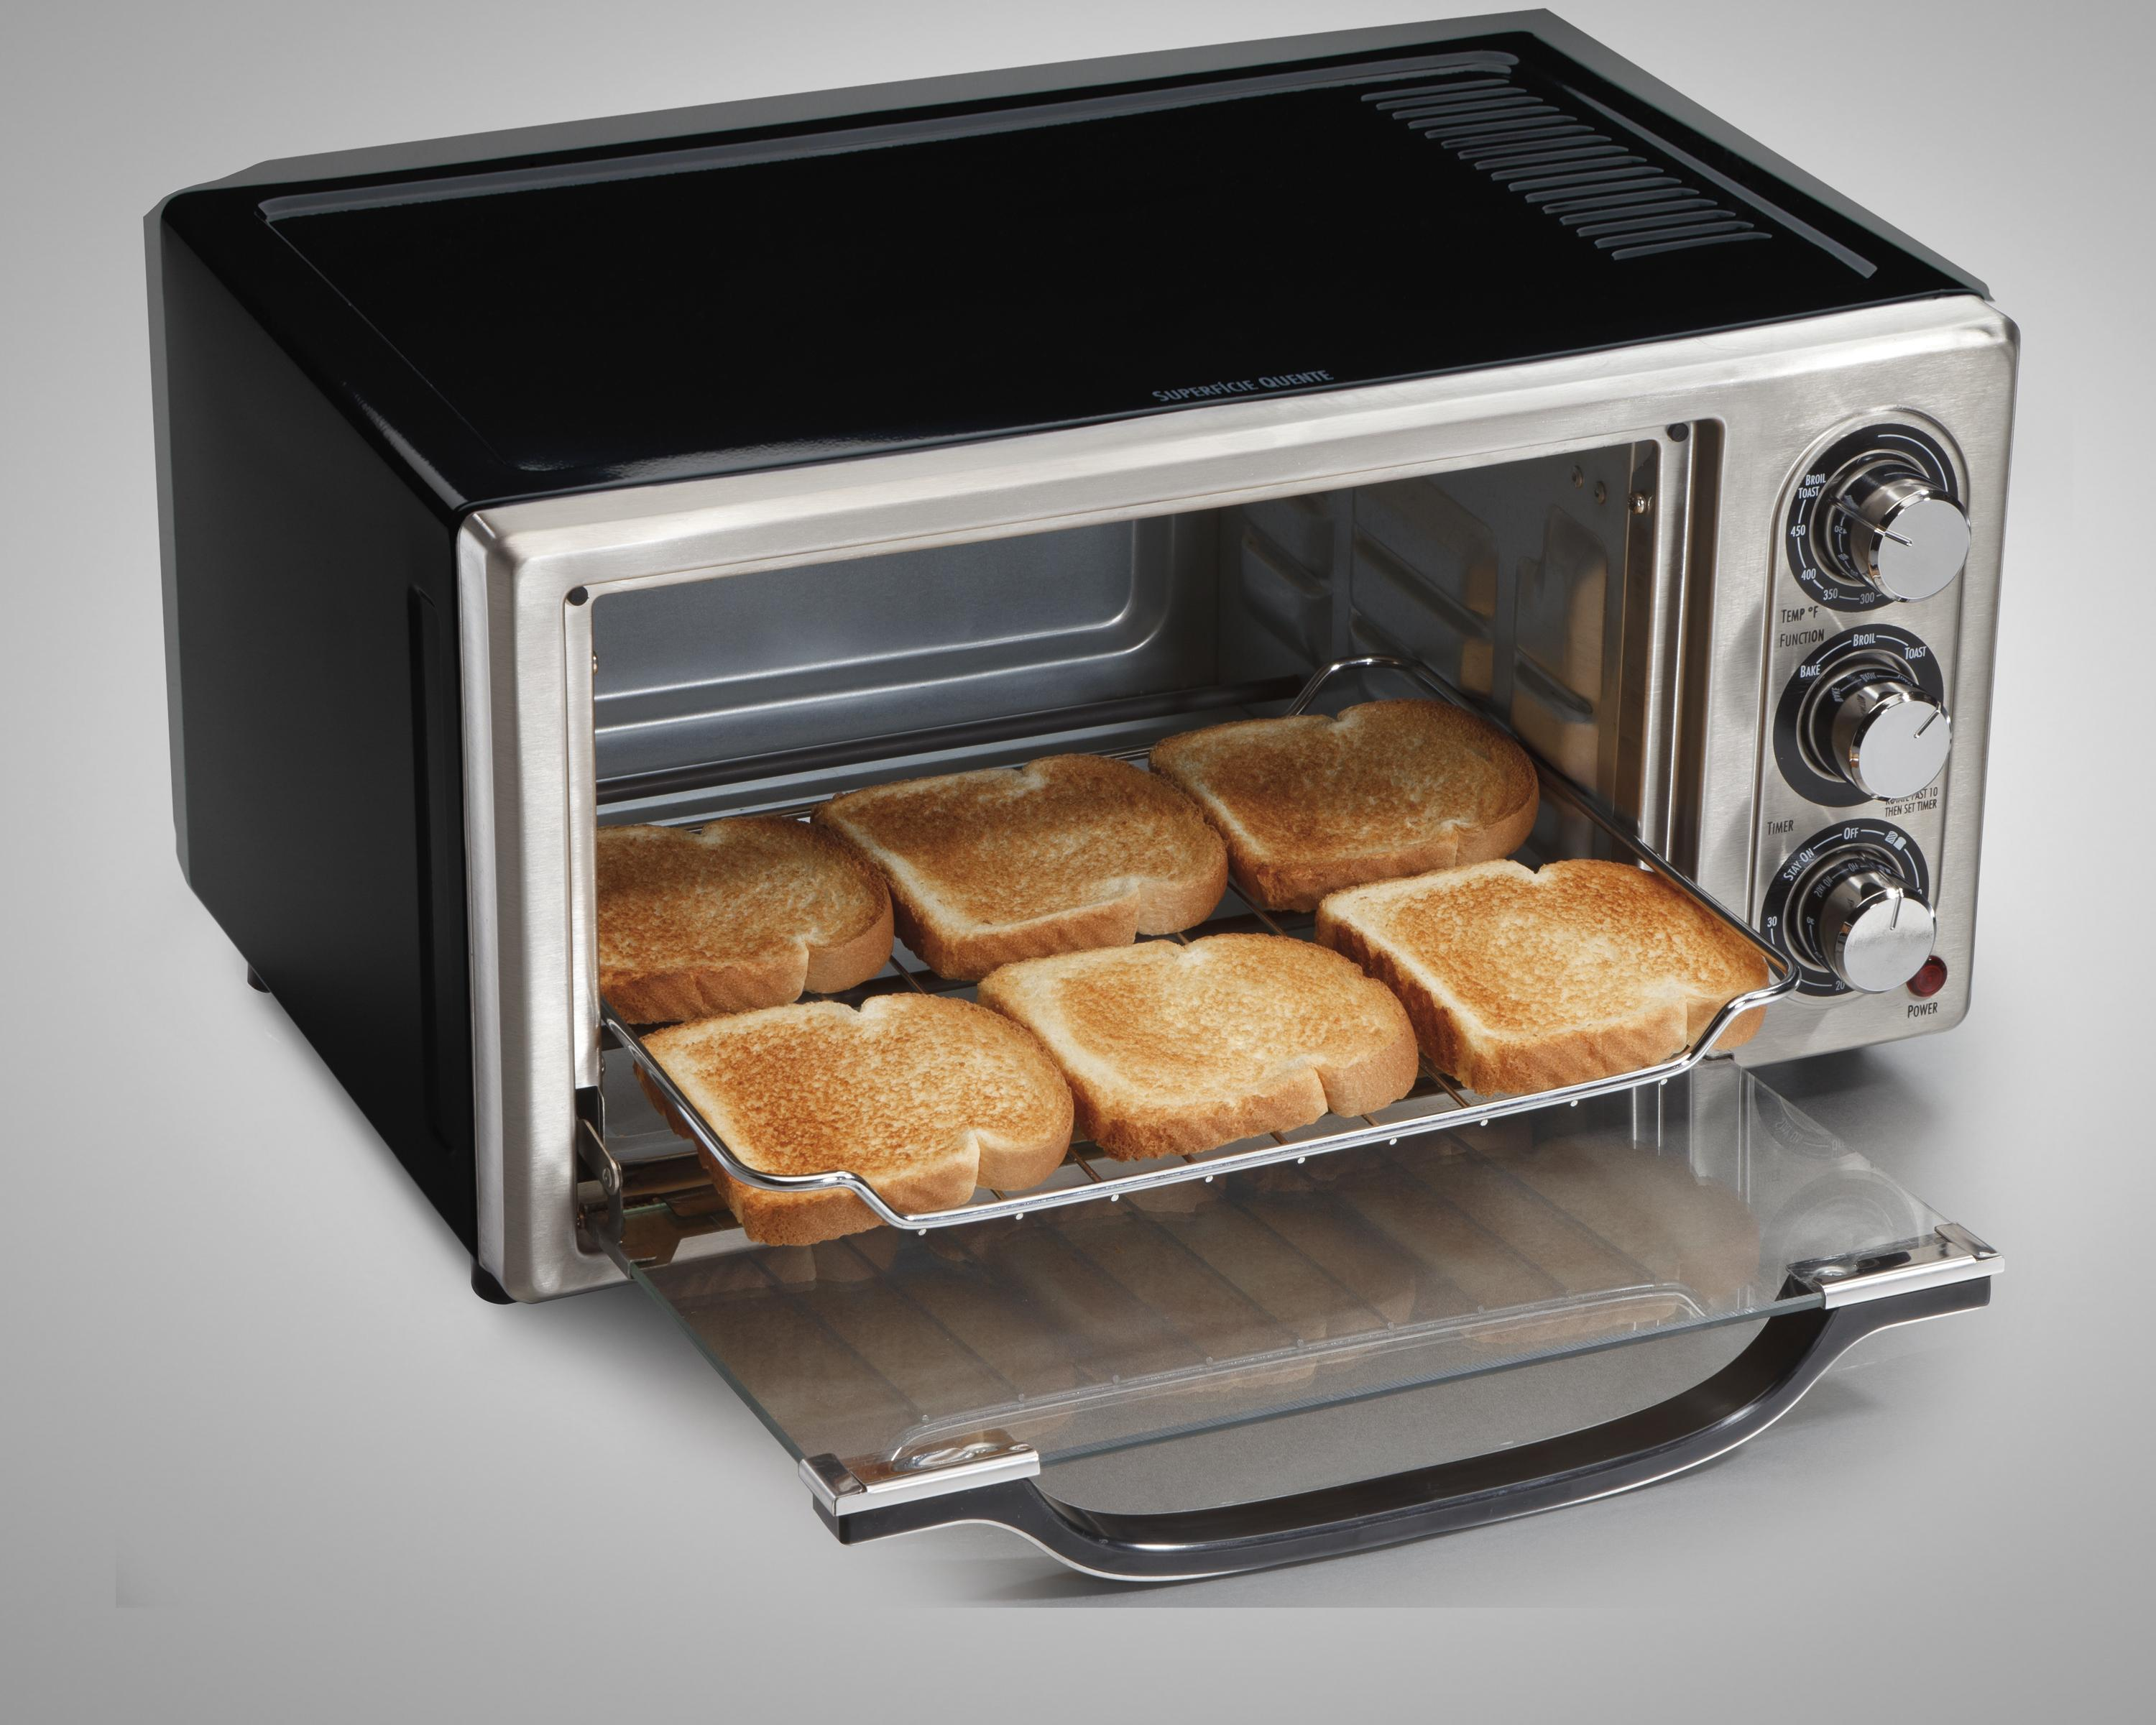 Hamilton Beach 31512c 6 Slice Convection Toaster Oven